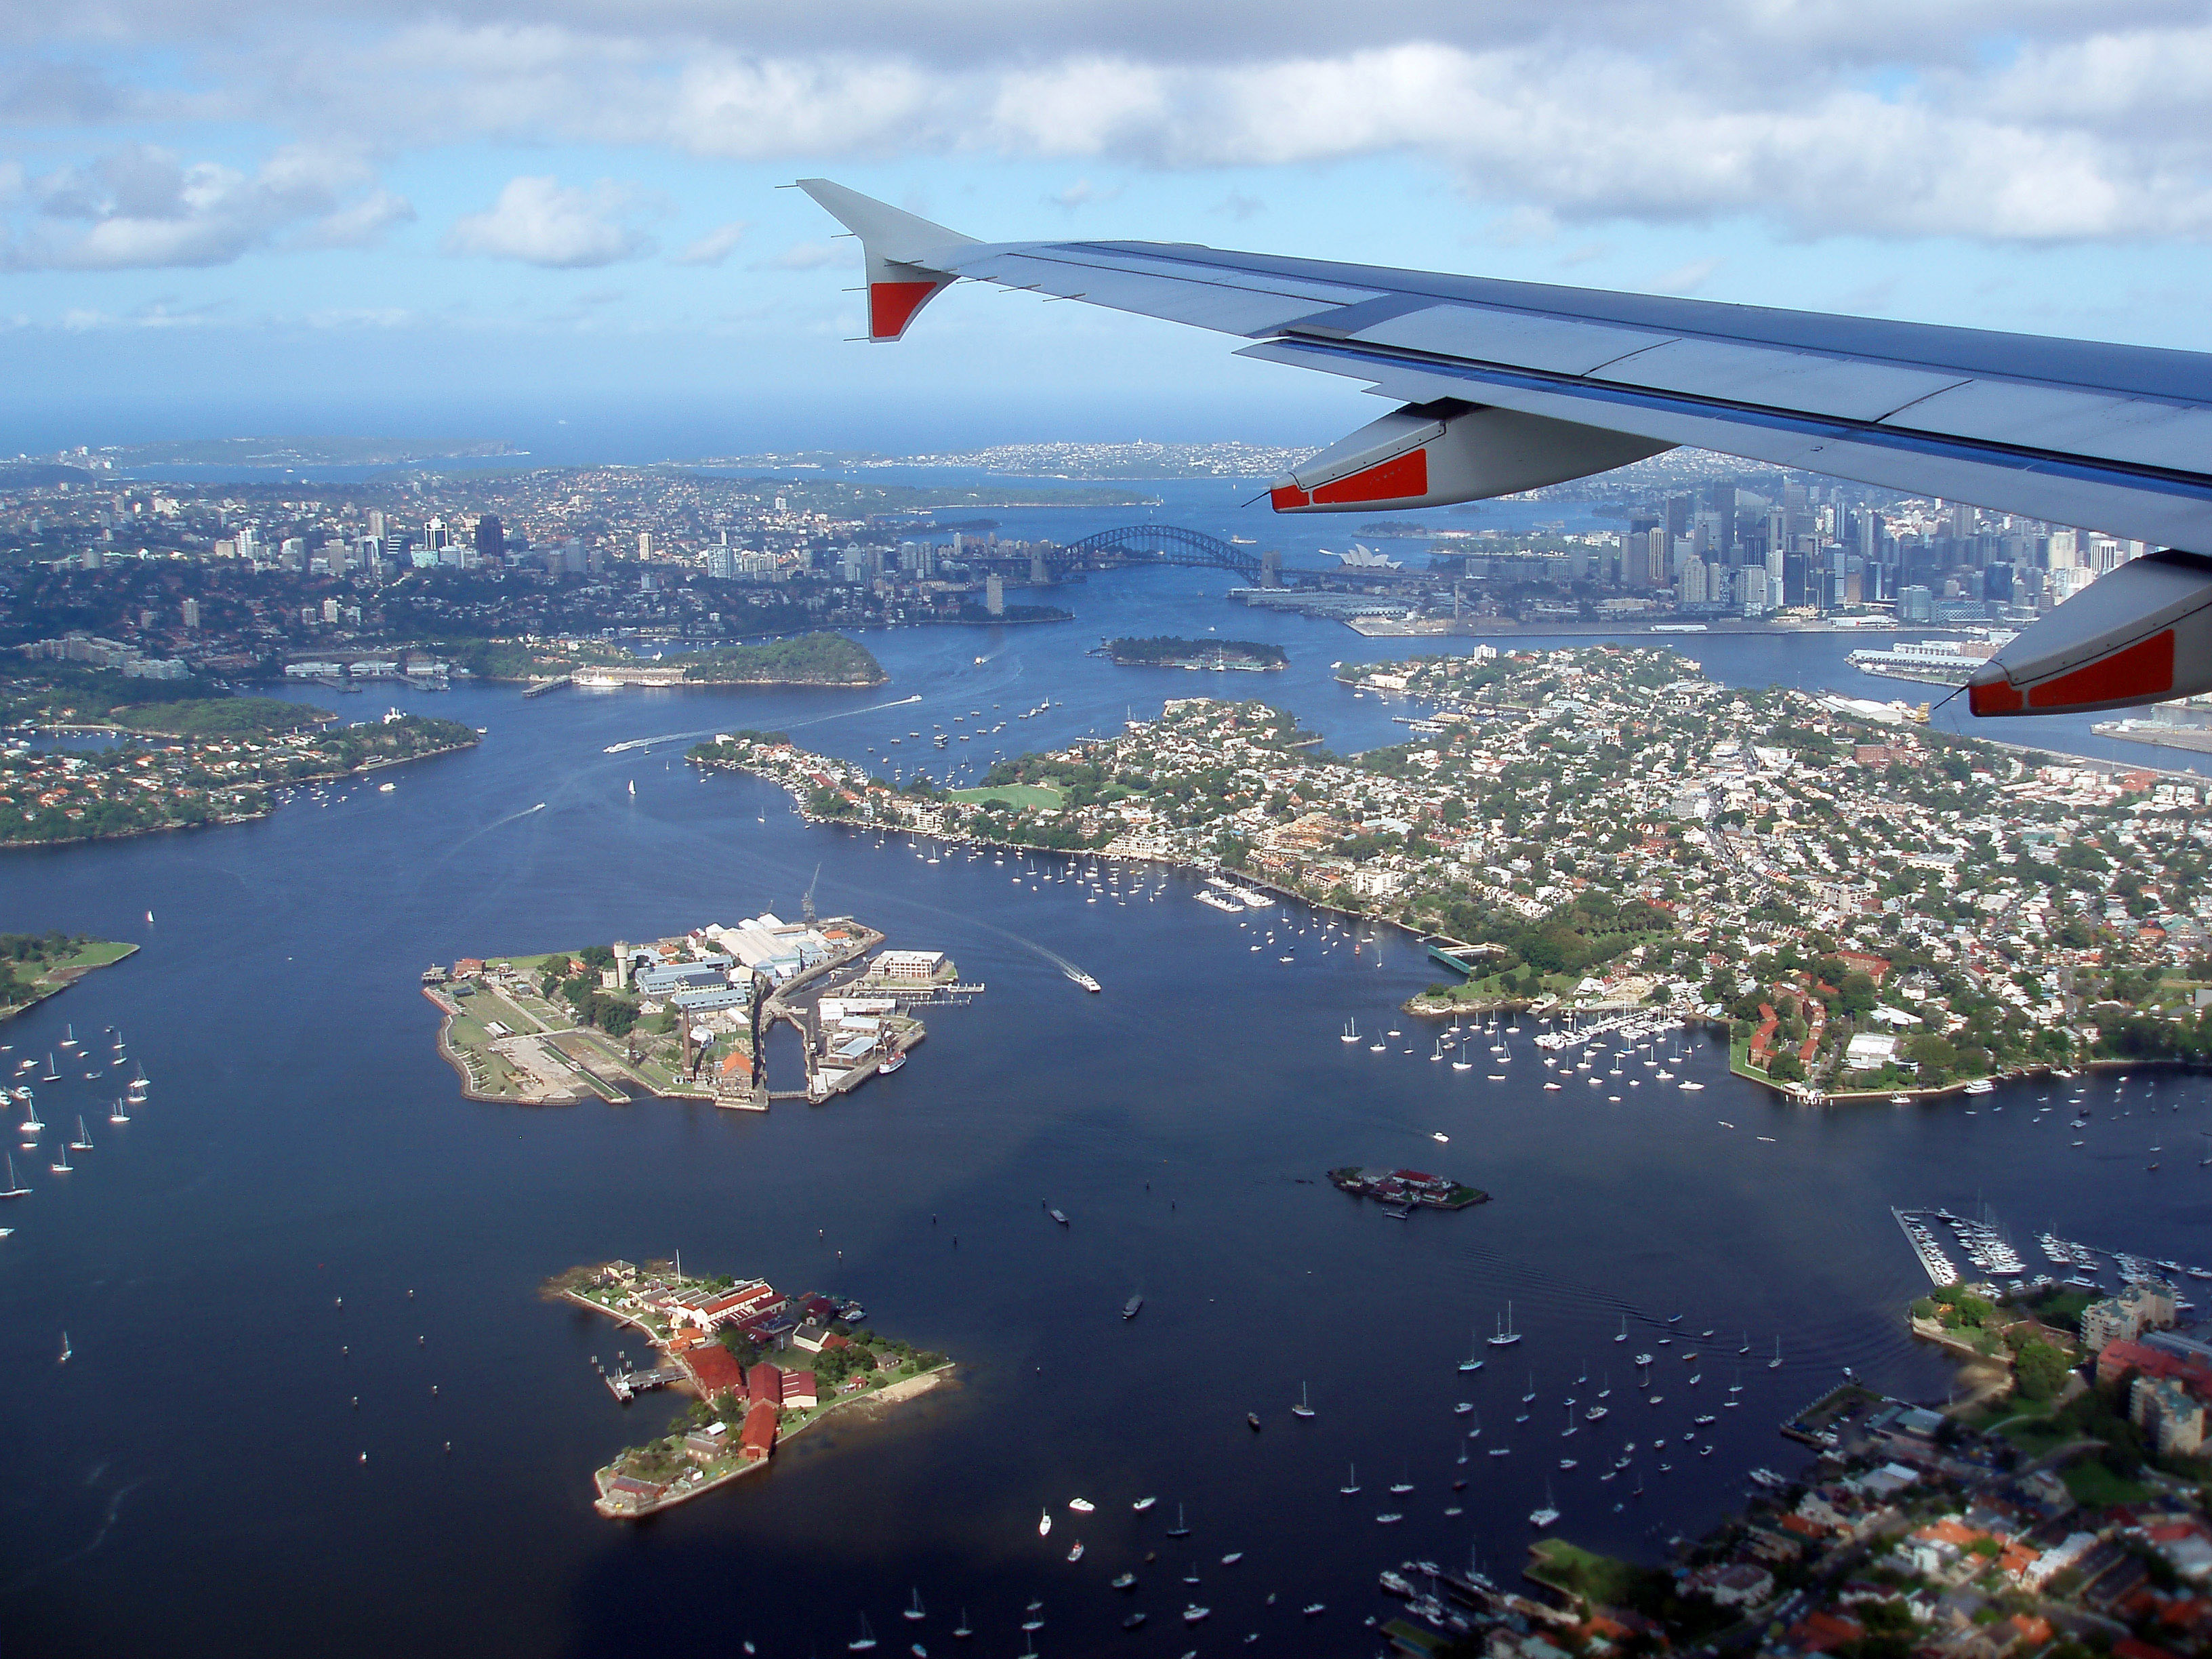 panoramic view of sydney from a plane